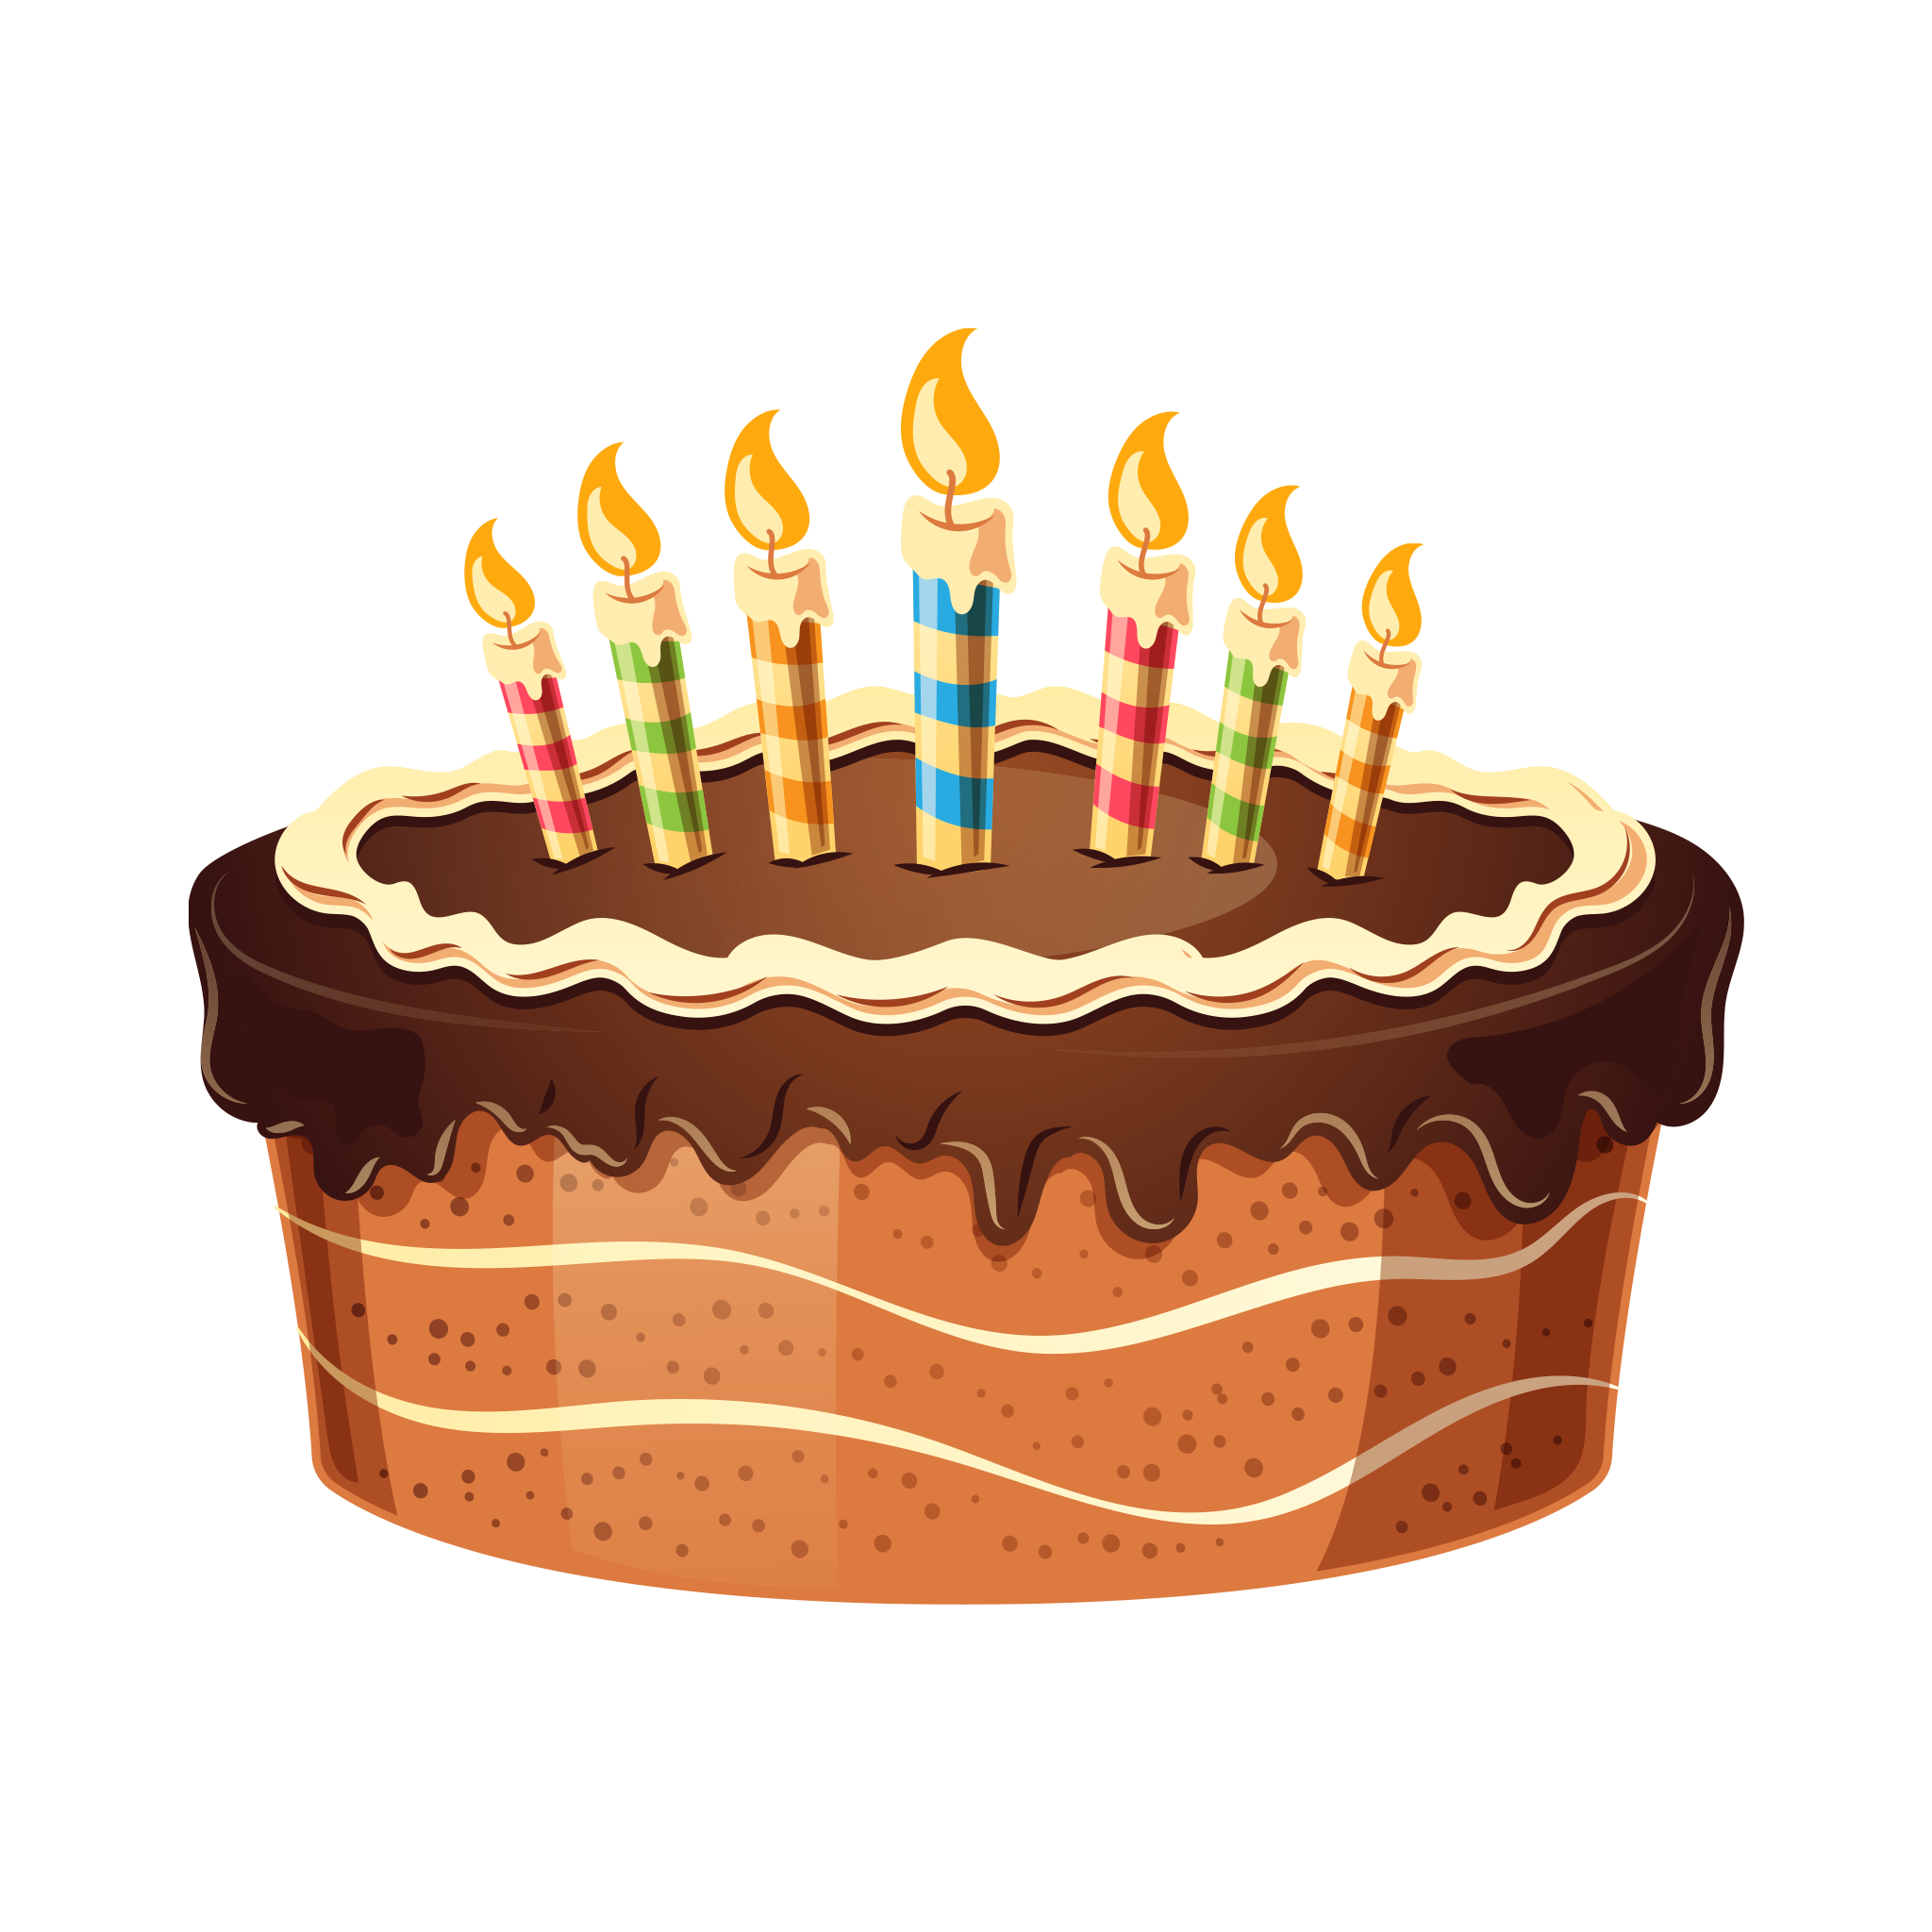 Birthday Cake With Candles Png Hd Image Free Download